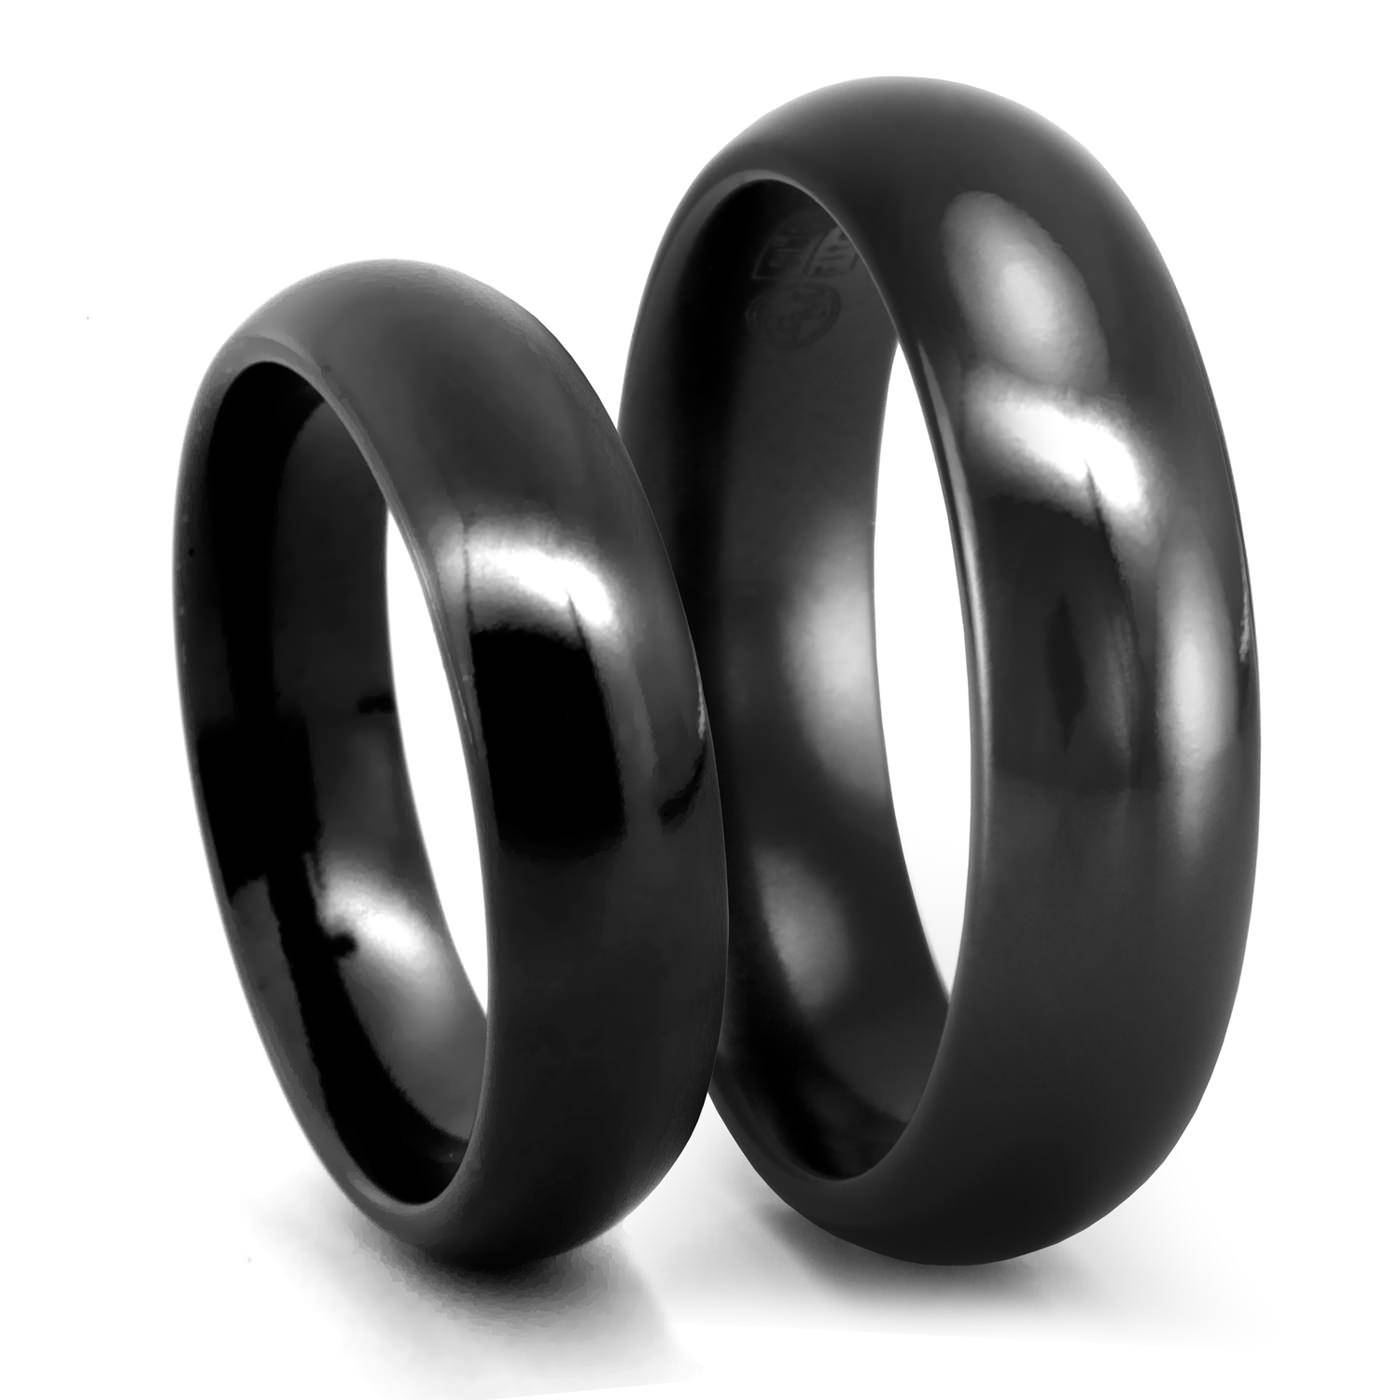 Wedding Rings : Mens Titanium Wedding Ring Designs The Elegant Throughout Titanium Wedding Bands (View 14 of 15)